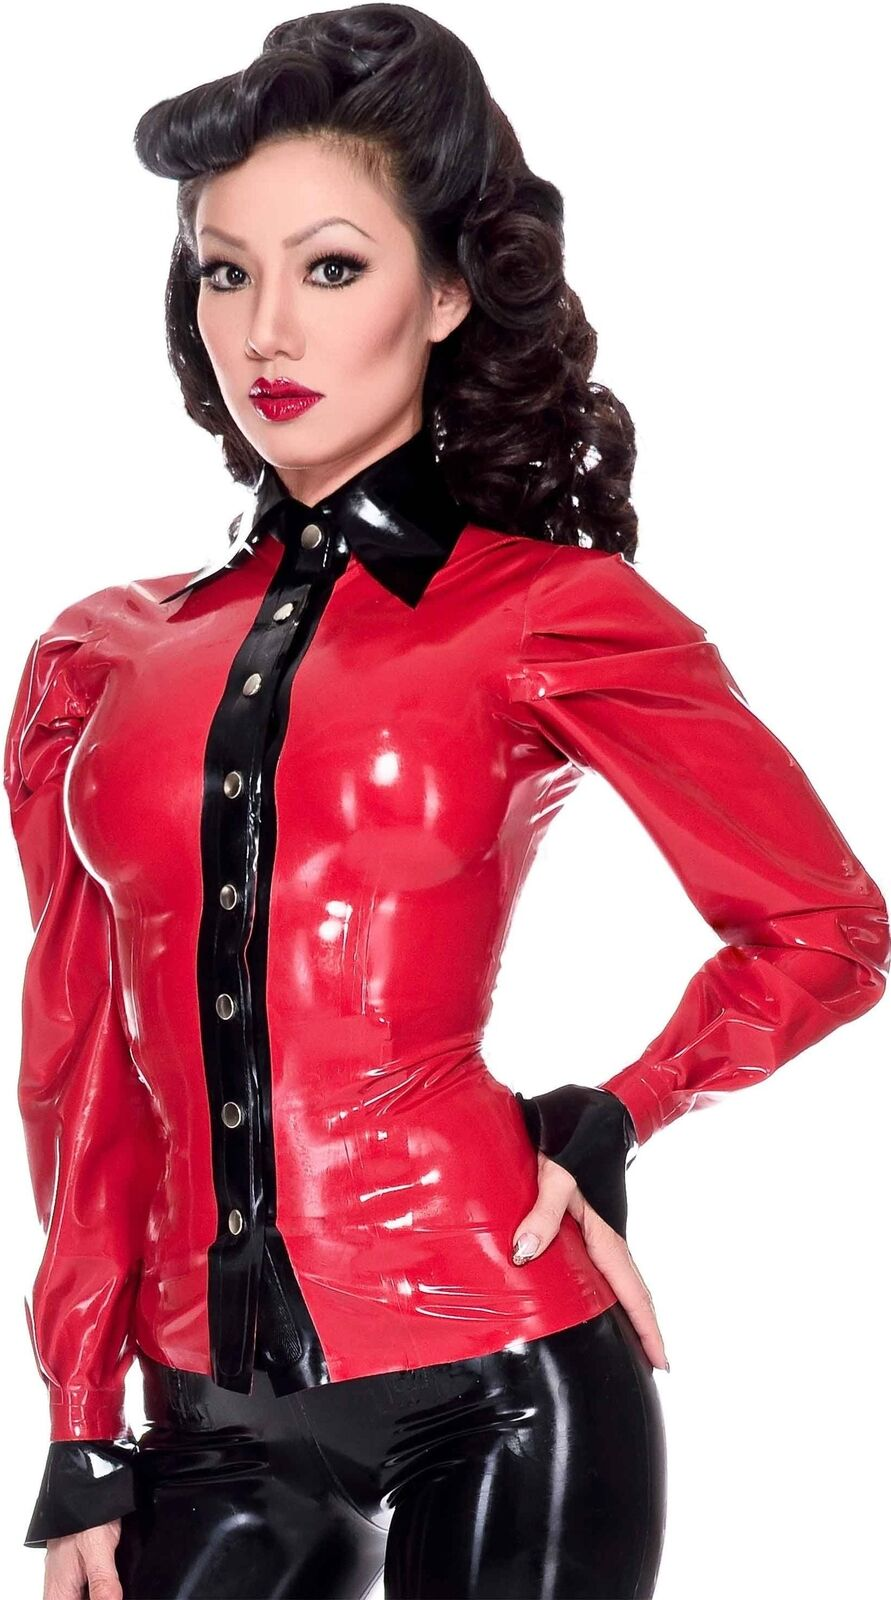 Westward Bound Elite Latex Blouse rot with schwarz Trim